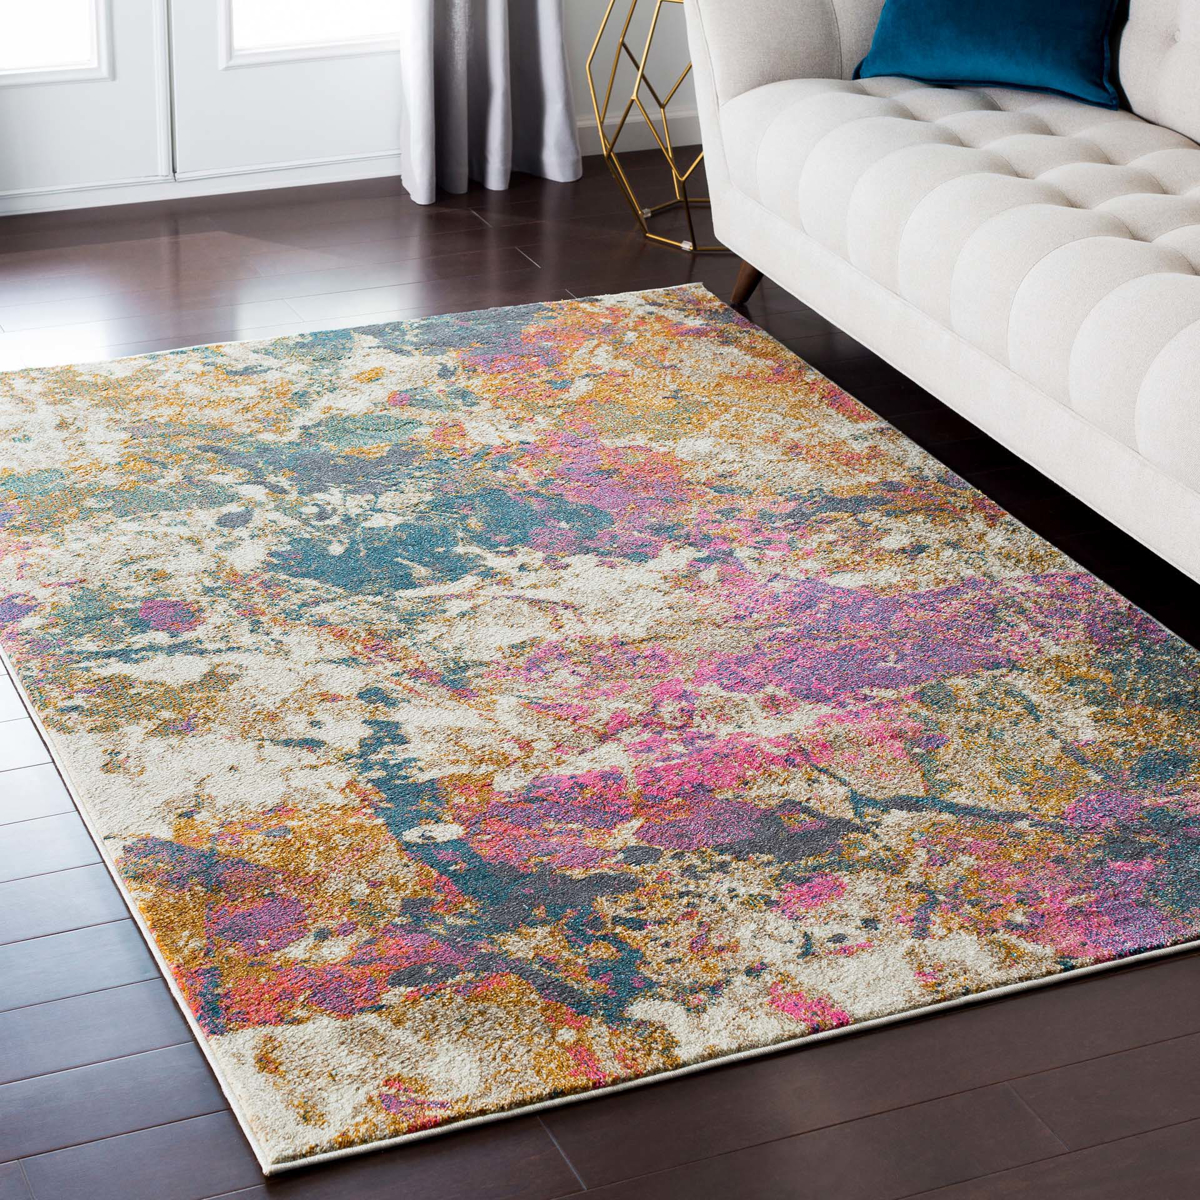 Abstract Turkish cream rug with splashes of pink, teal and orangein living room